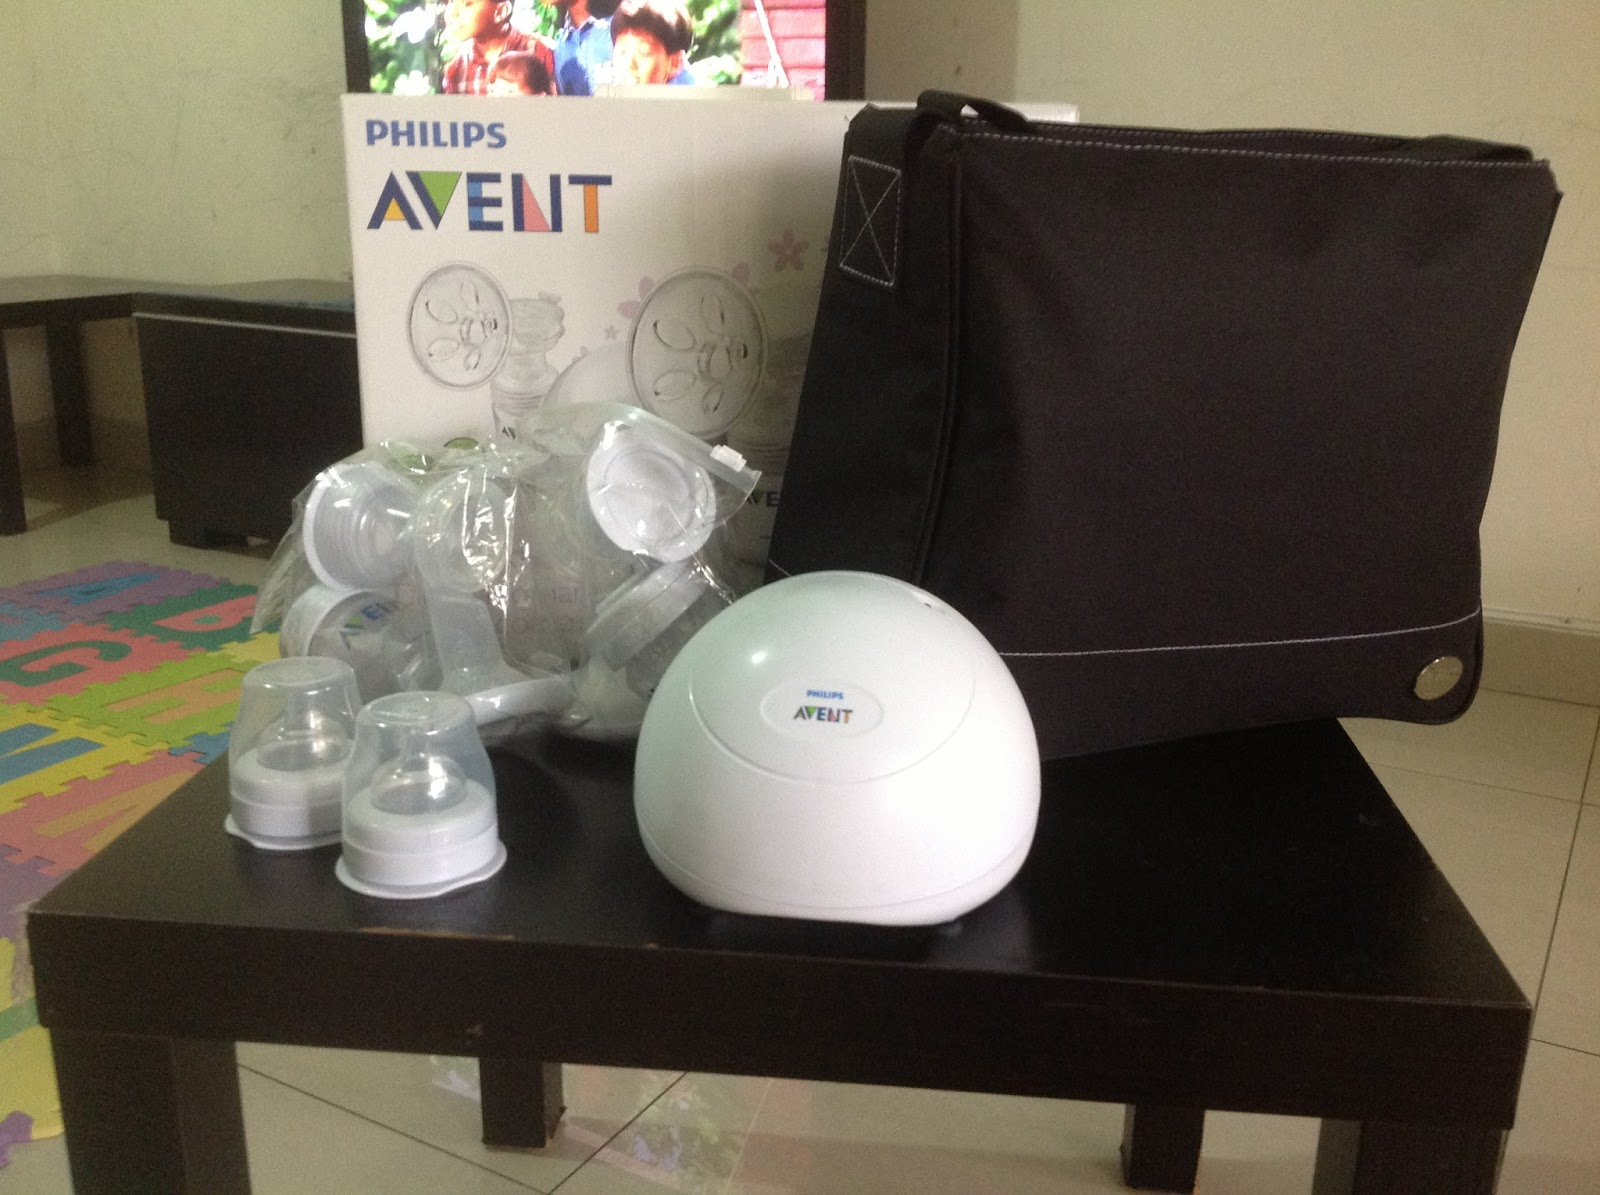 Philips avent breast pump sale